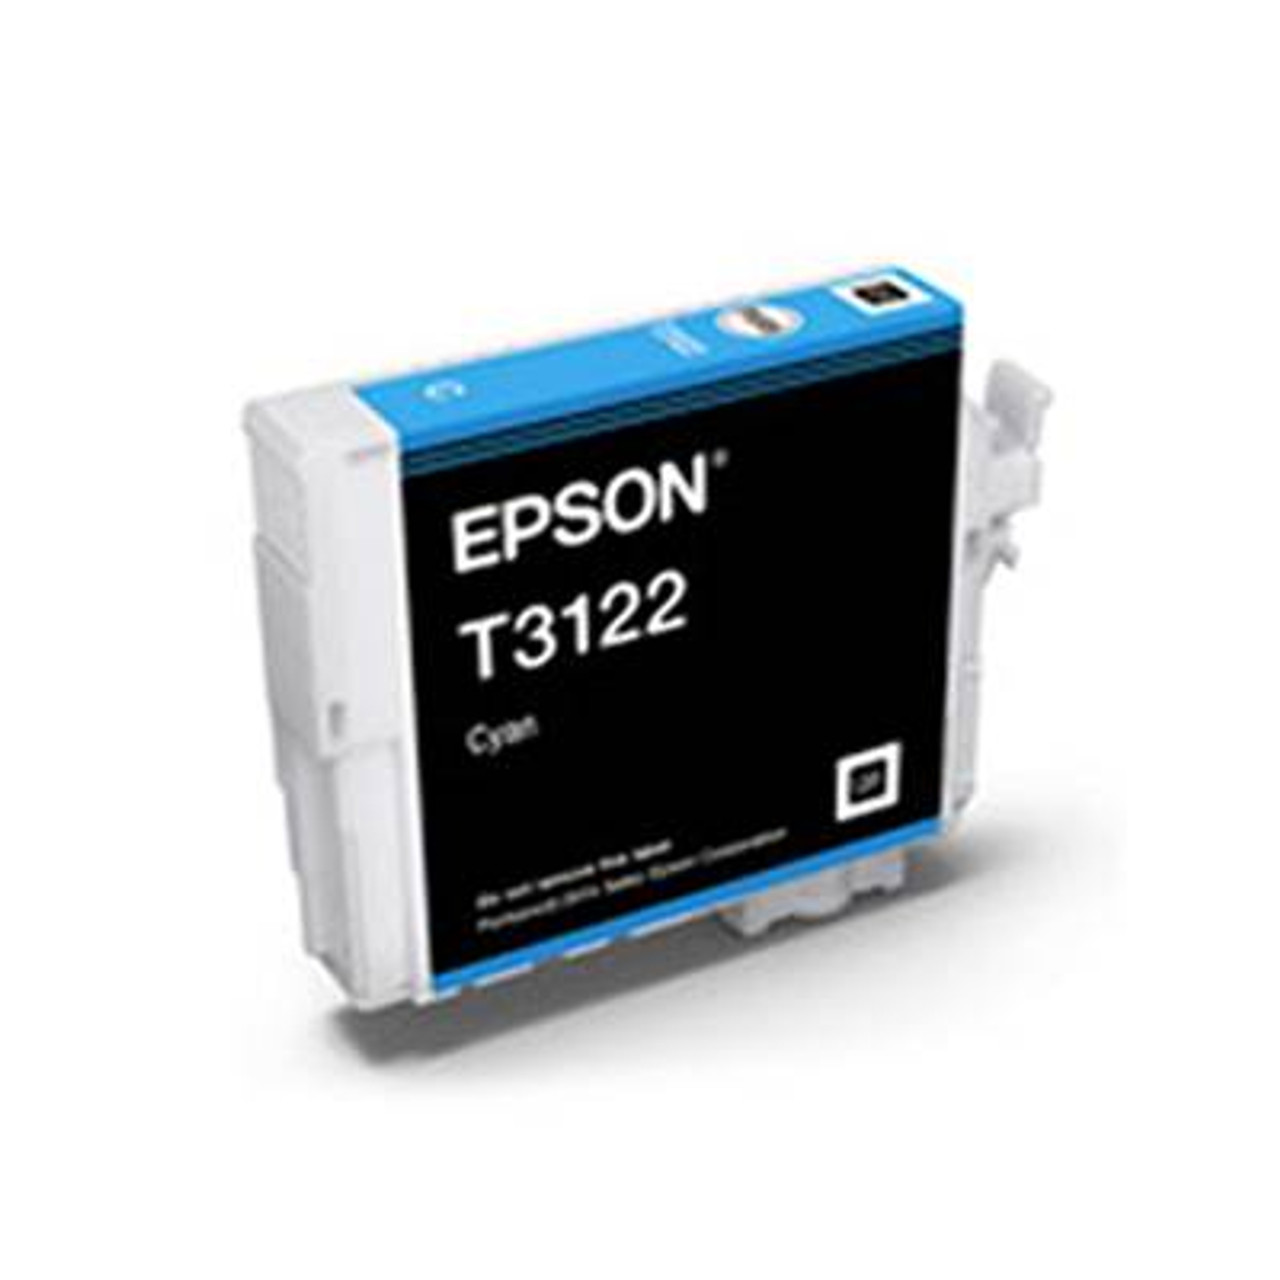 Image for Epson T3122 UltraChrome Hi-Gloss2 Cyan Ink Cartridge CX Computer Superstore